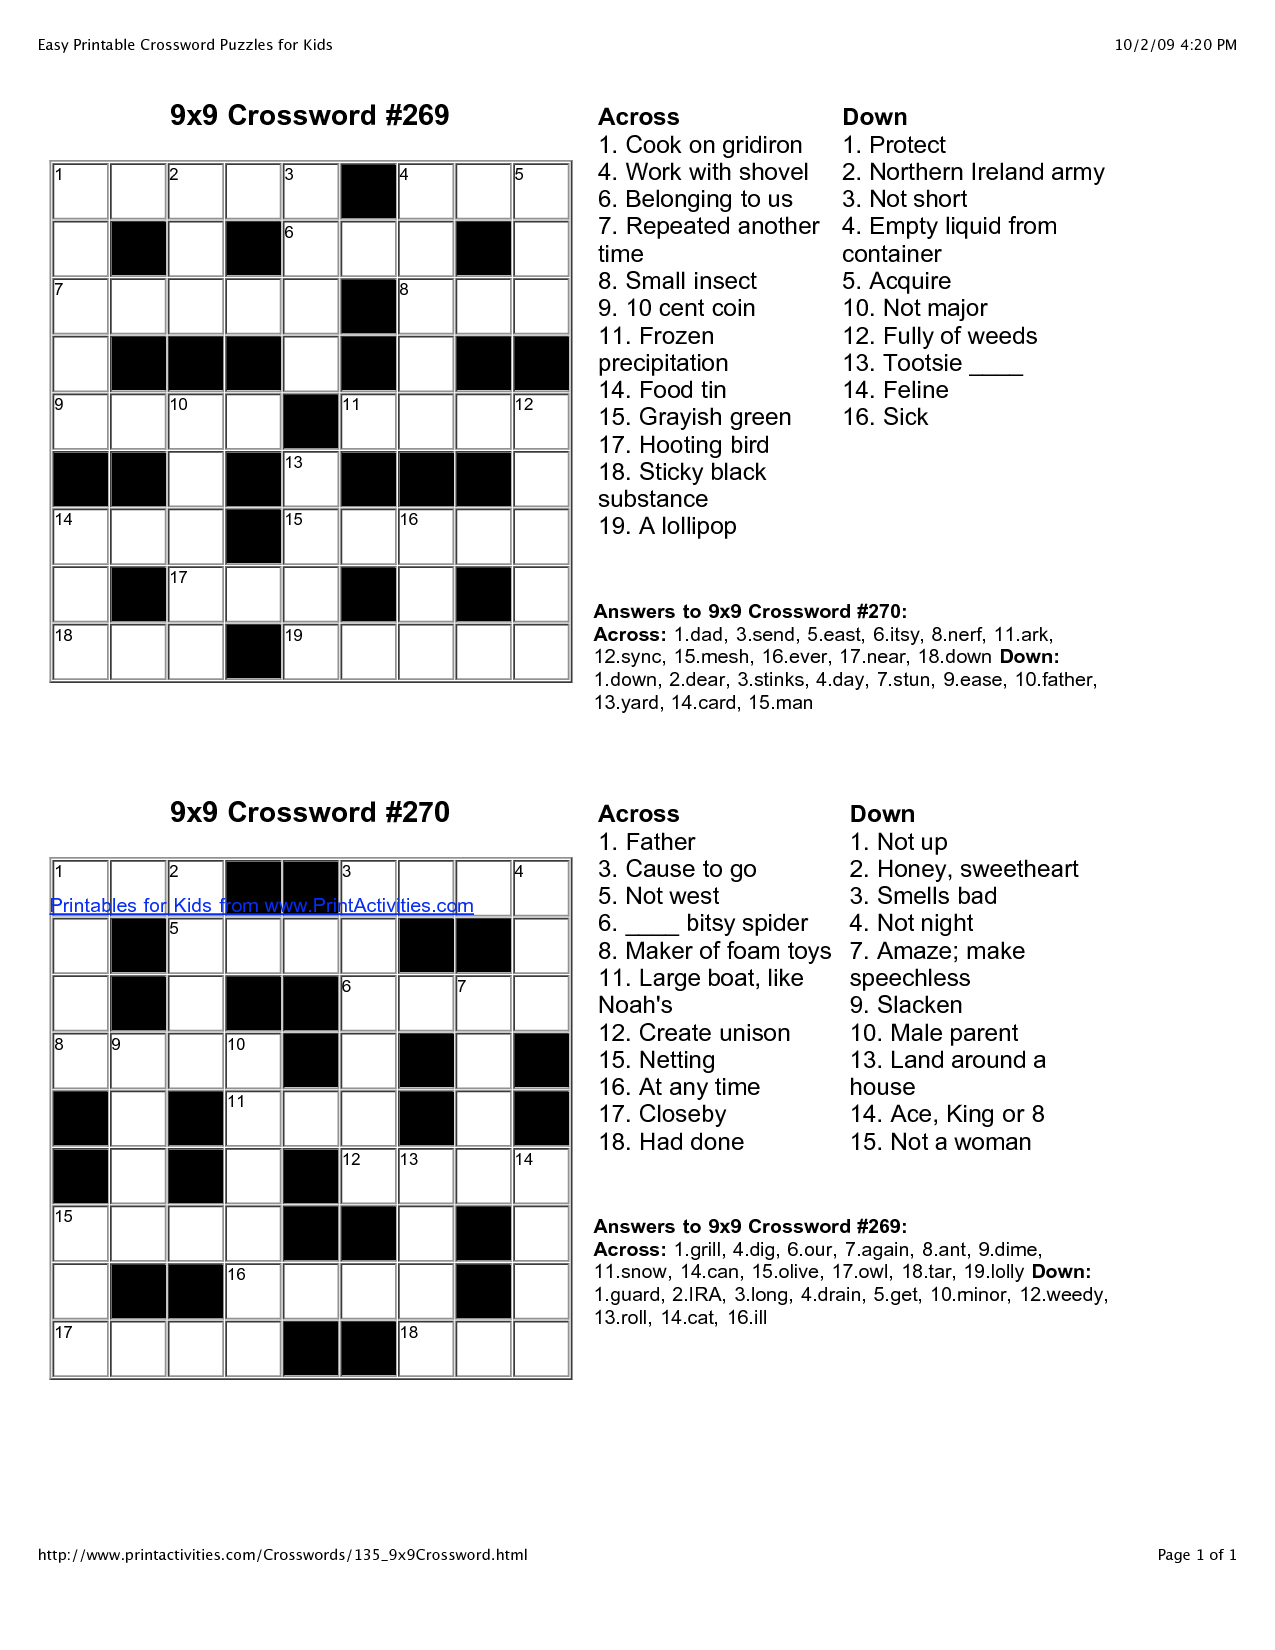 √ Printable English Crossword Puzzles With Answers - Printable English Crossword Puzzles With Answers